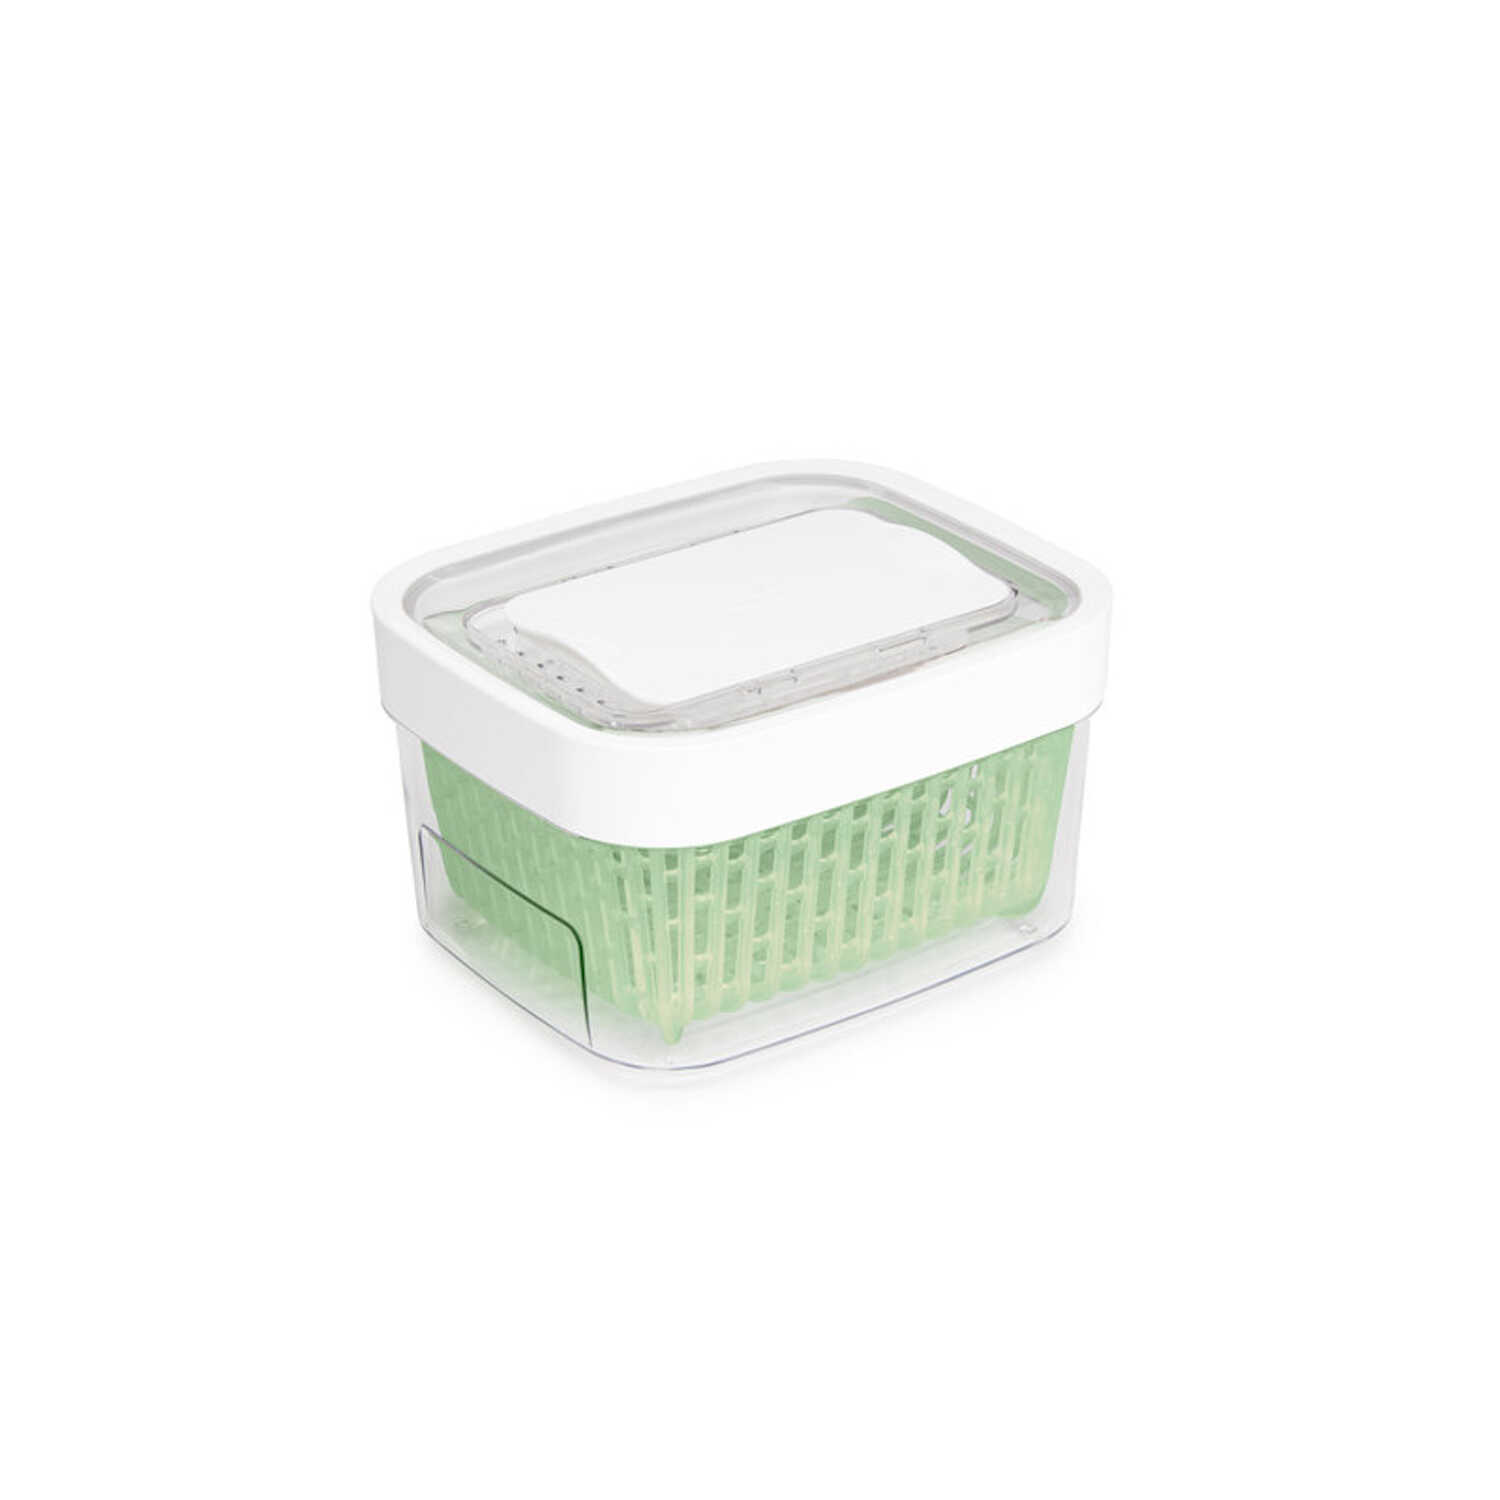 OXO  Good Grips  1.6 qt. Produce Keeper  1 pk Clear